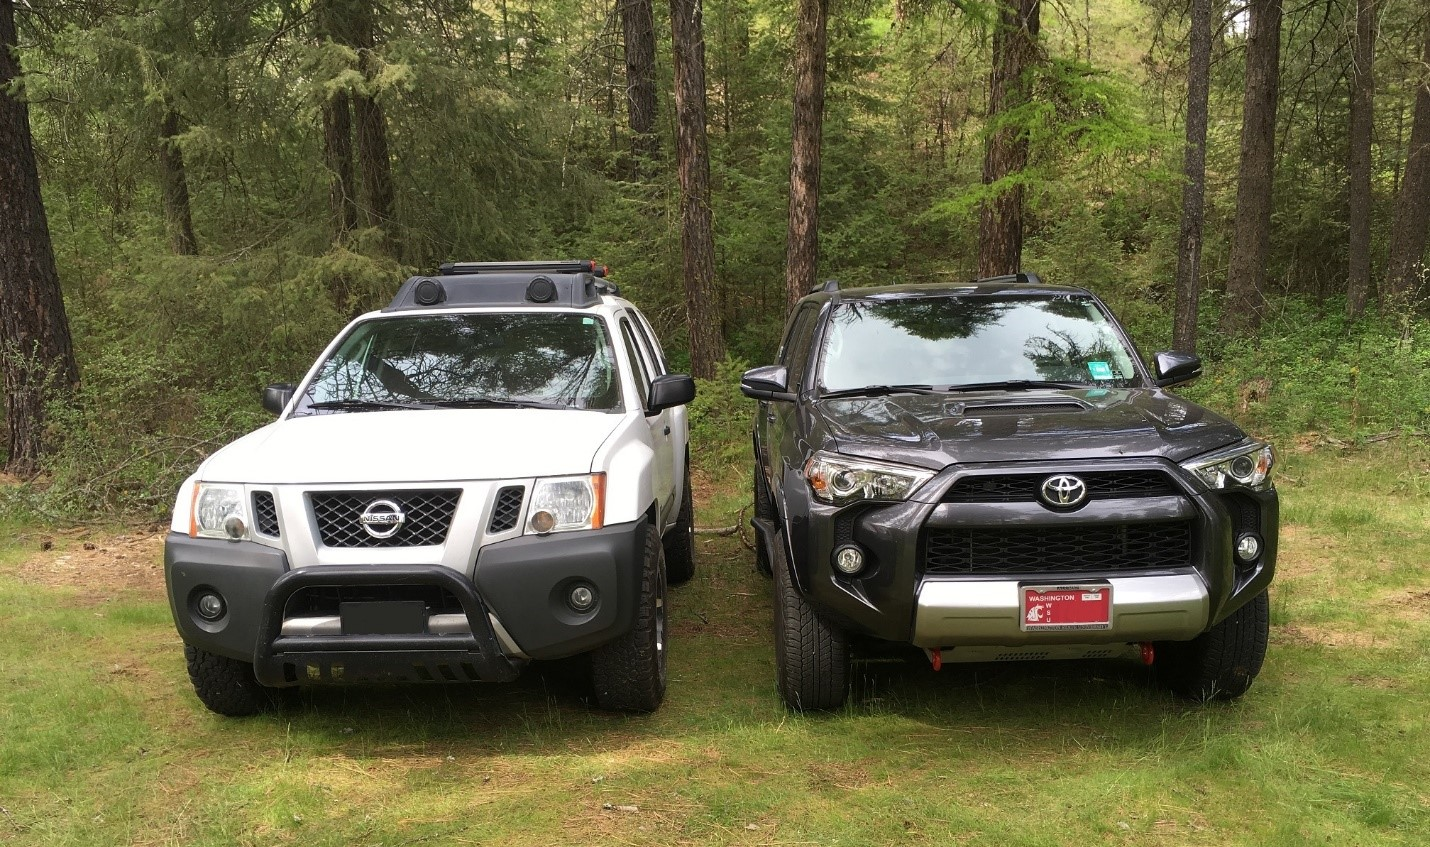 4Runner TRD Off-Road Vs Xterra Off-Road, Body on frame ...